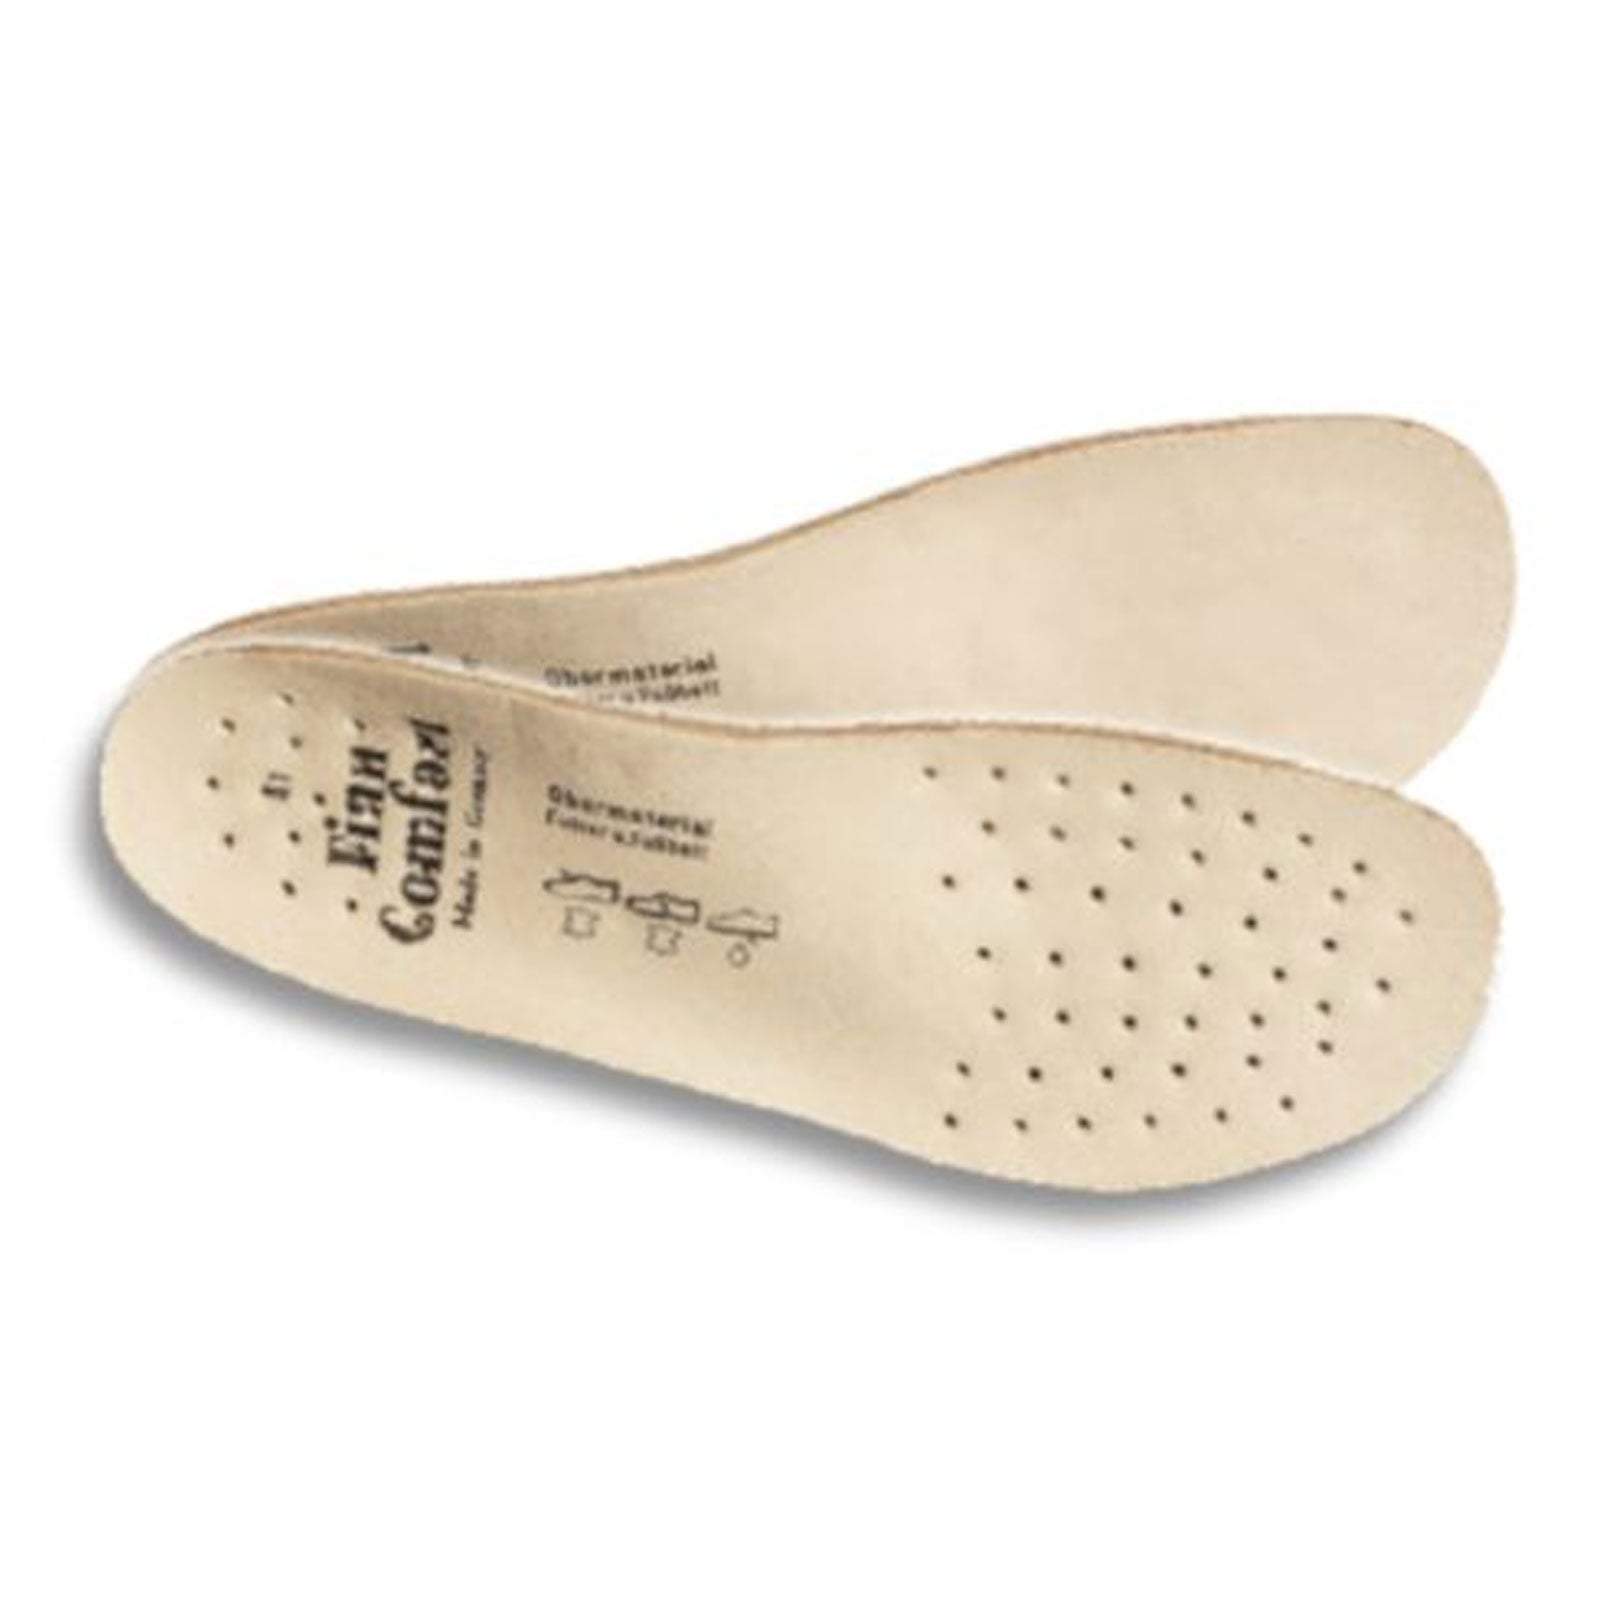 Finn Comfort Footbed 19541 (Unisex) - Natural Orthotics|Full Length|Full - Posted - The Heel Shoe Fitters